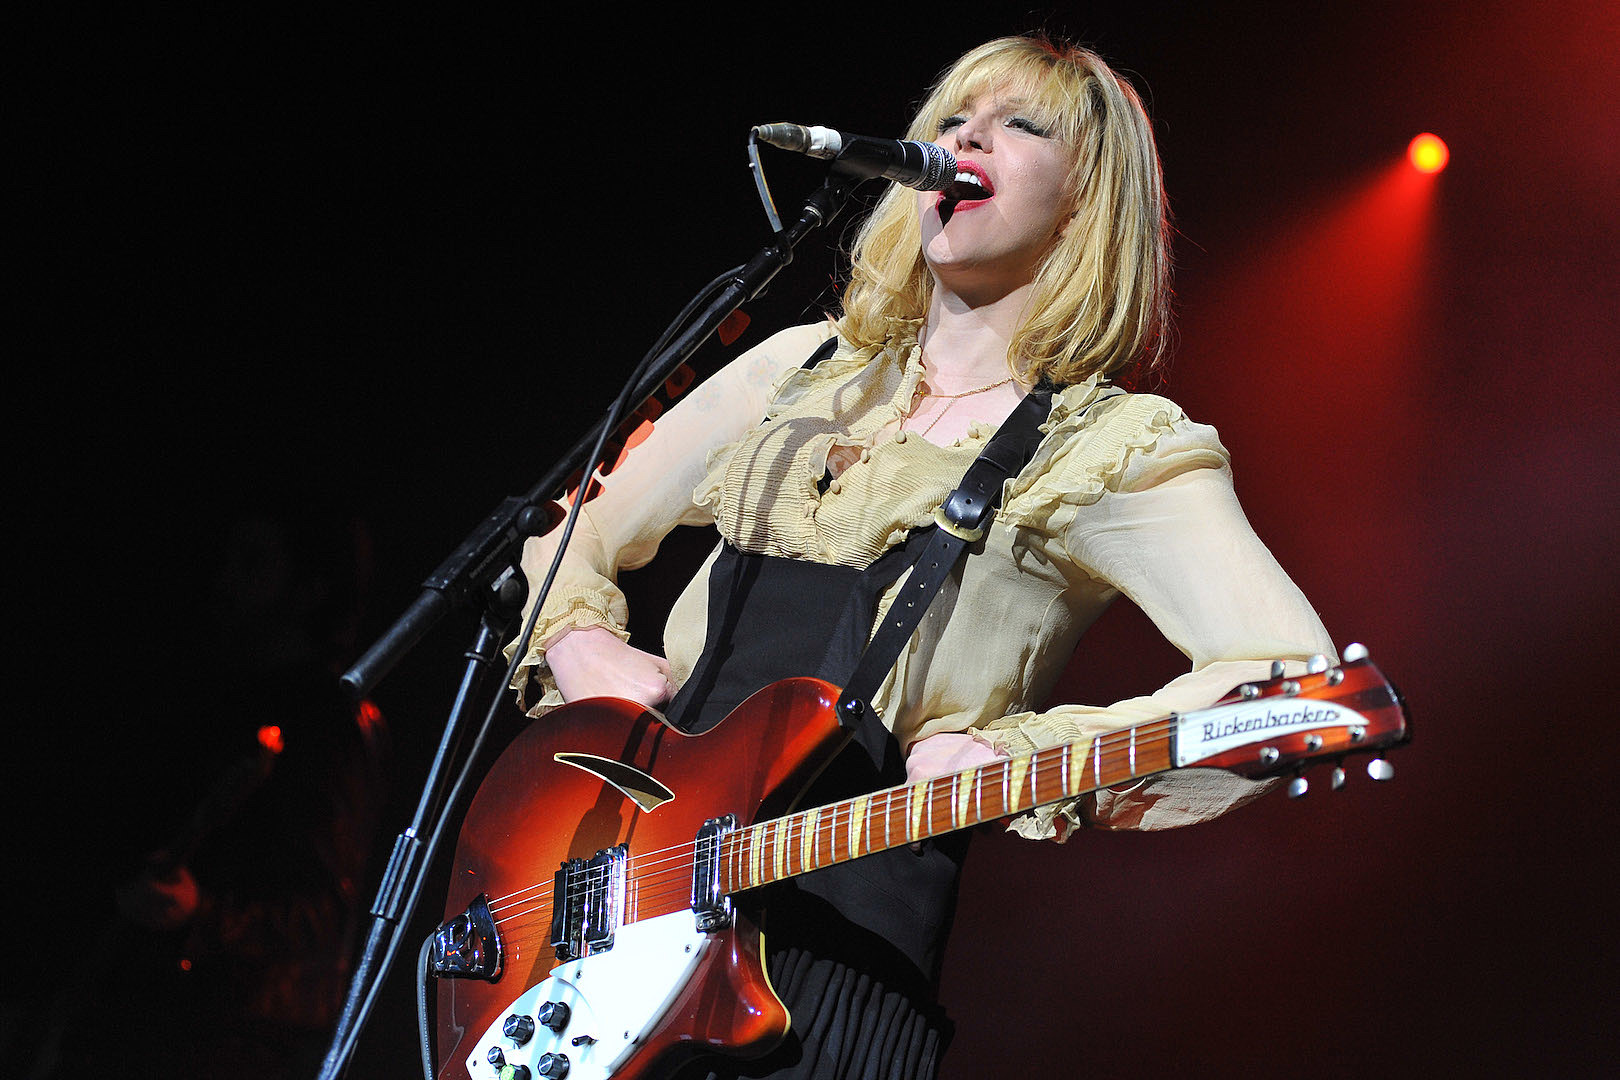 Listen to Courtney Love's '90s-Focused 'Mother' Song From Horror Soundtrack